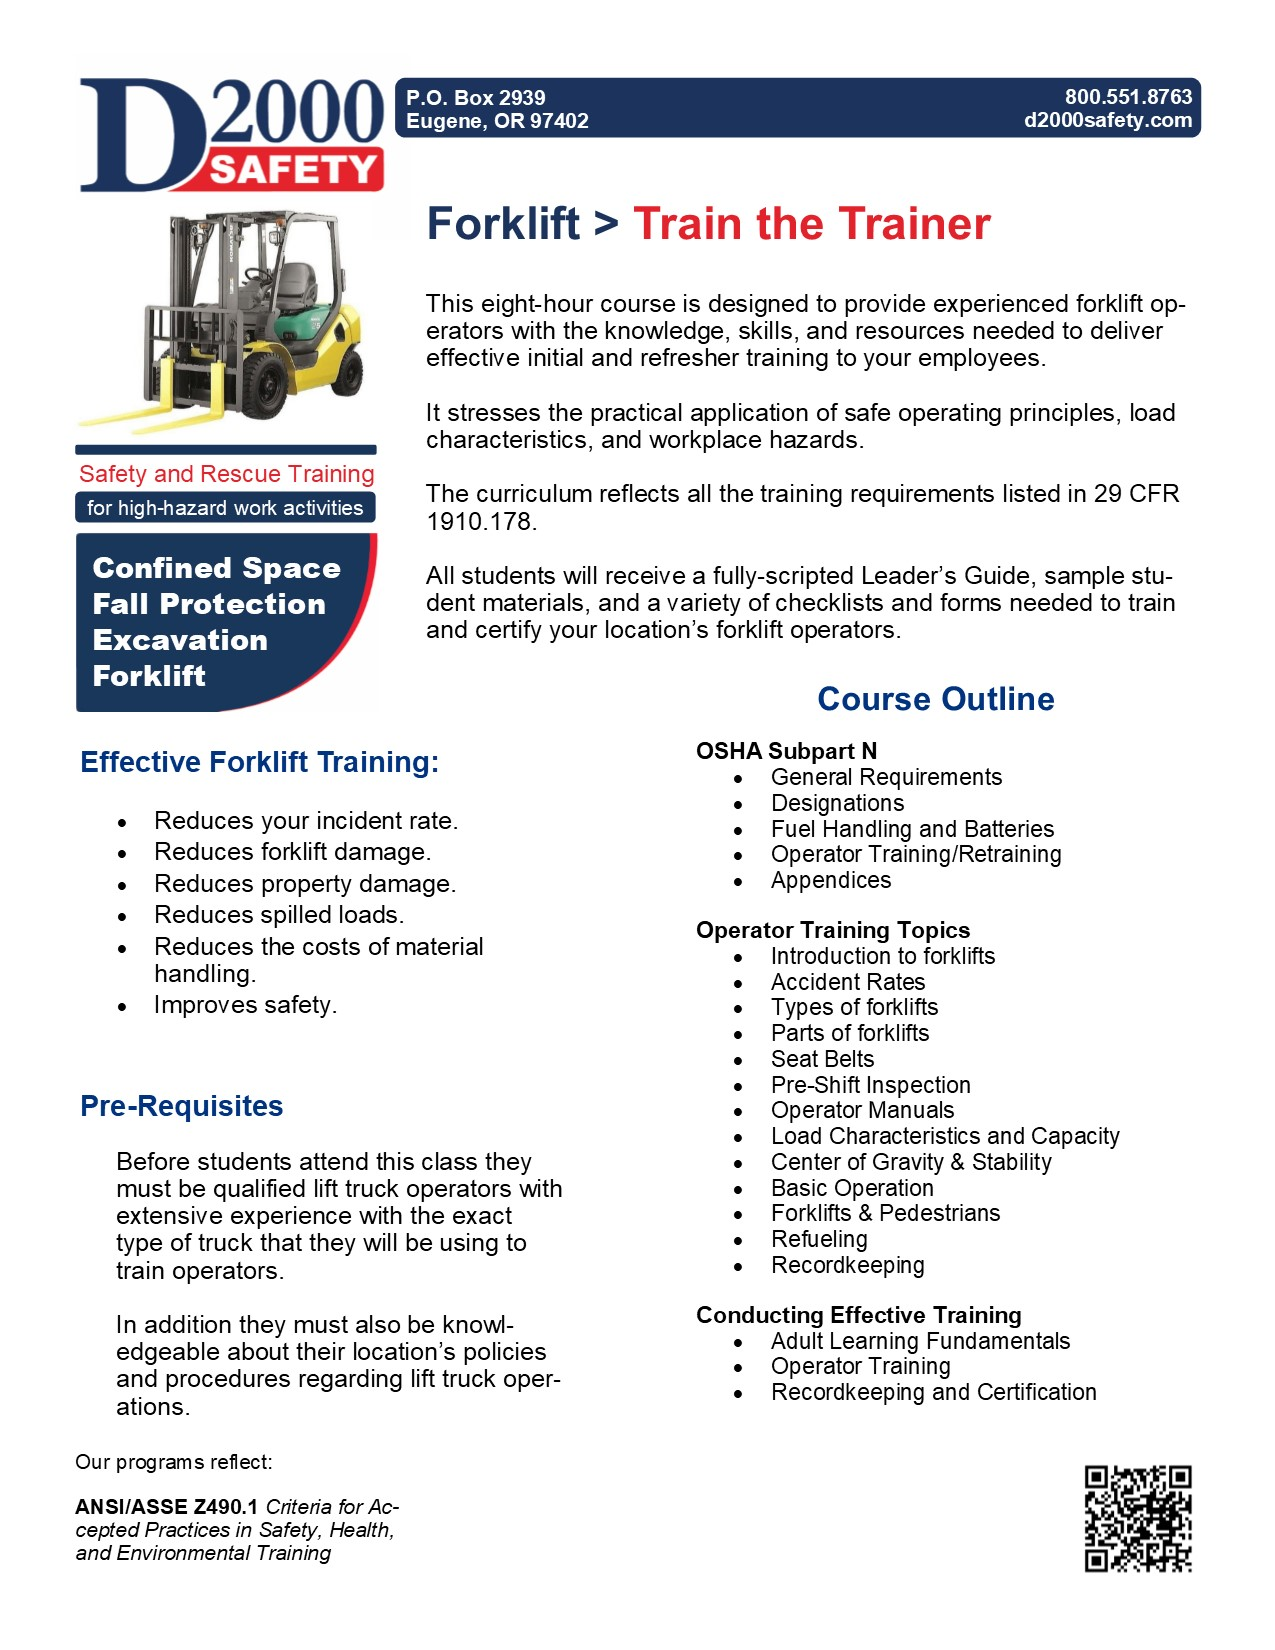 Forklift: Train the Trainer | D2000 Safety